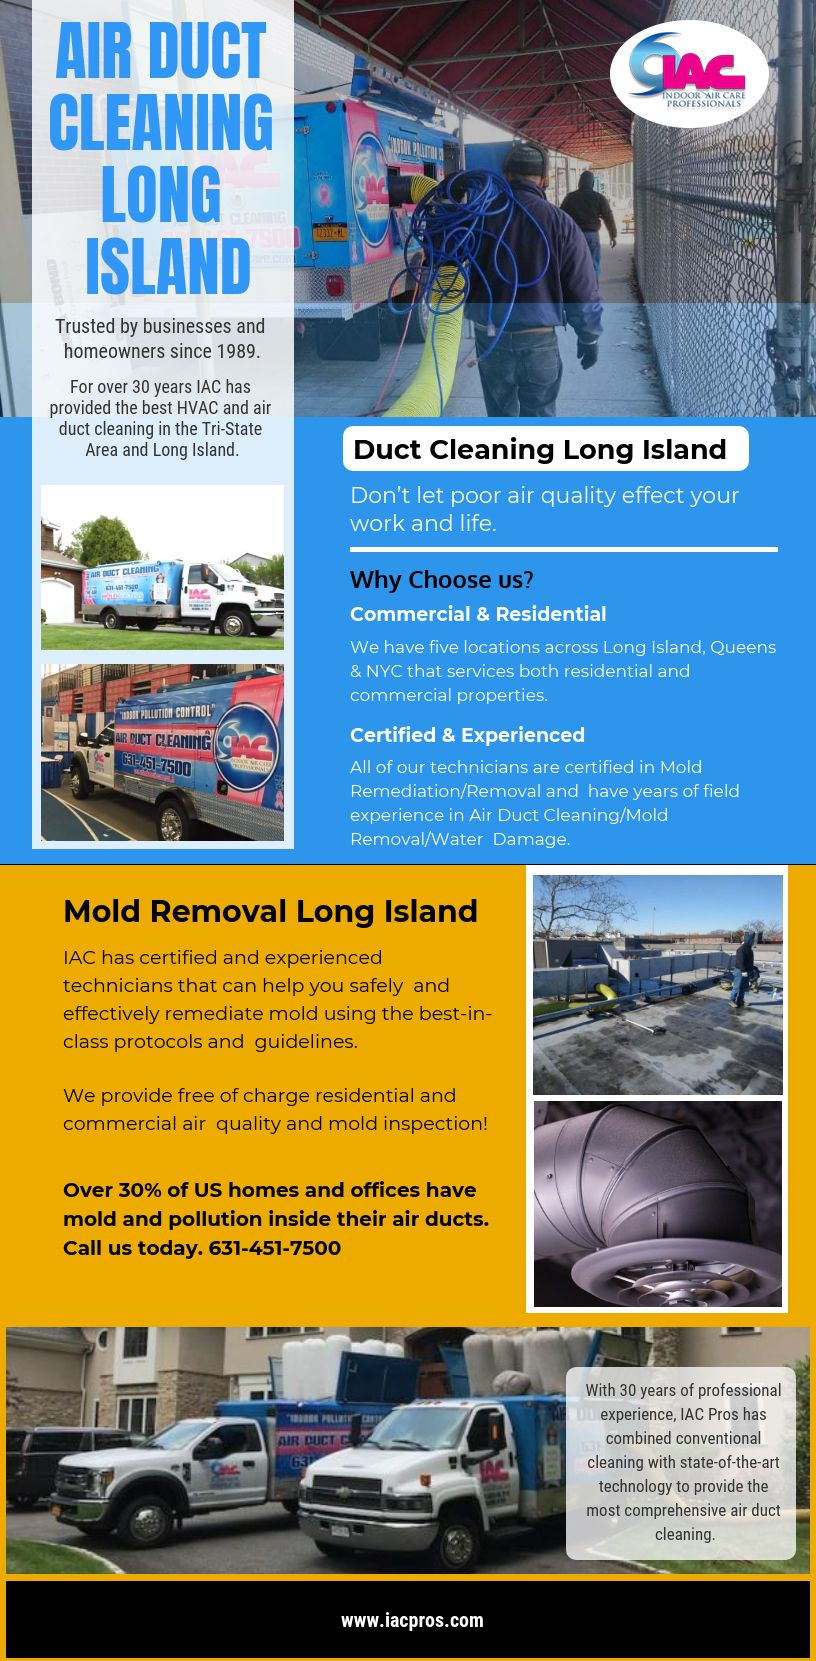 Air Duct Cleaning Long Island Duct Cleaning Air Care Air Duct